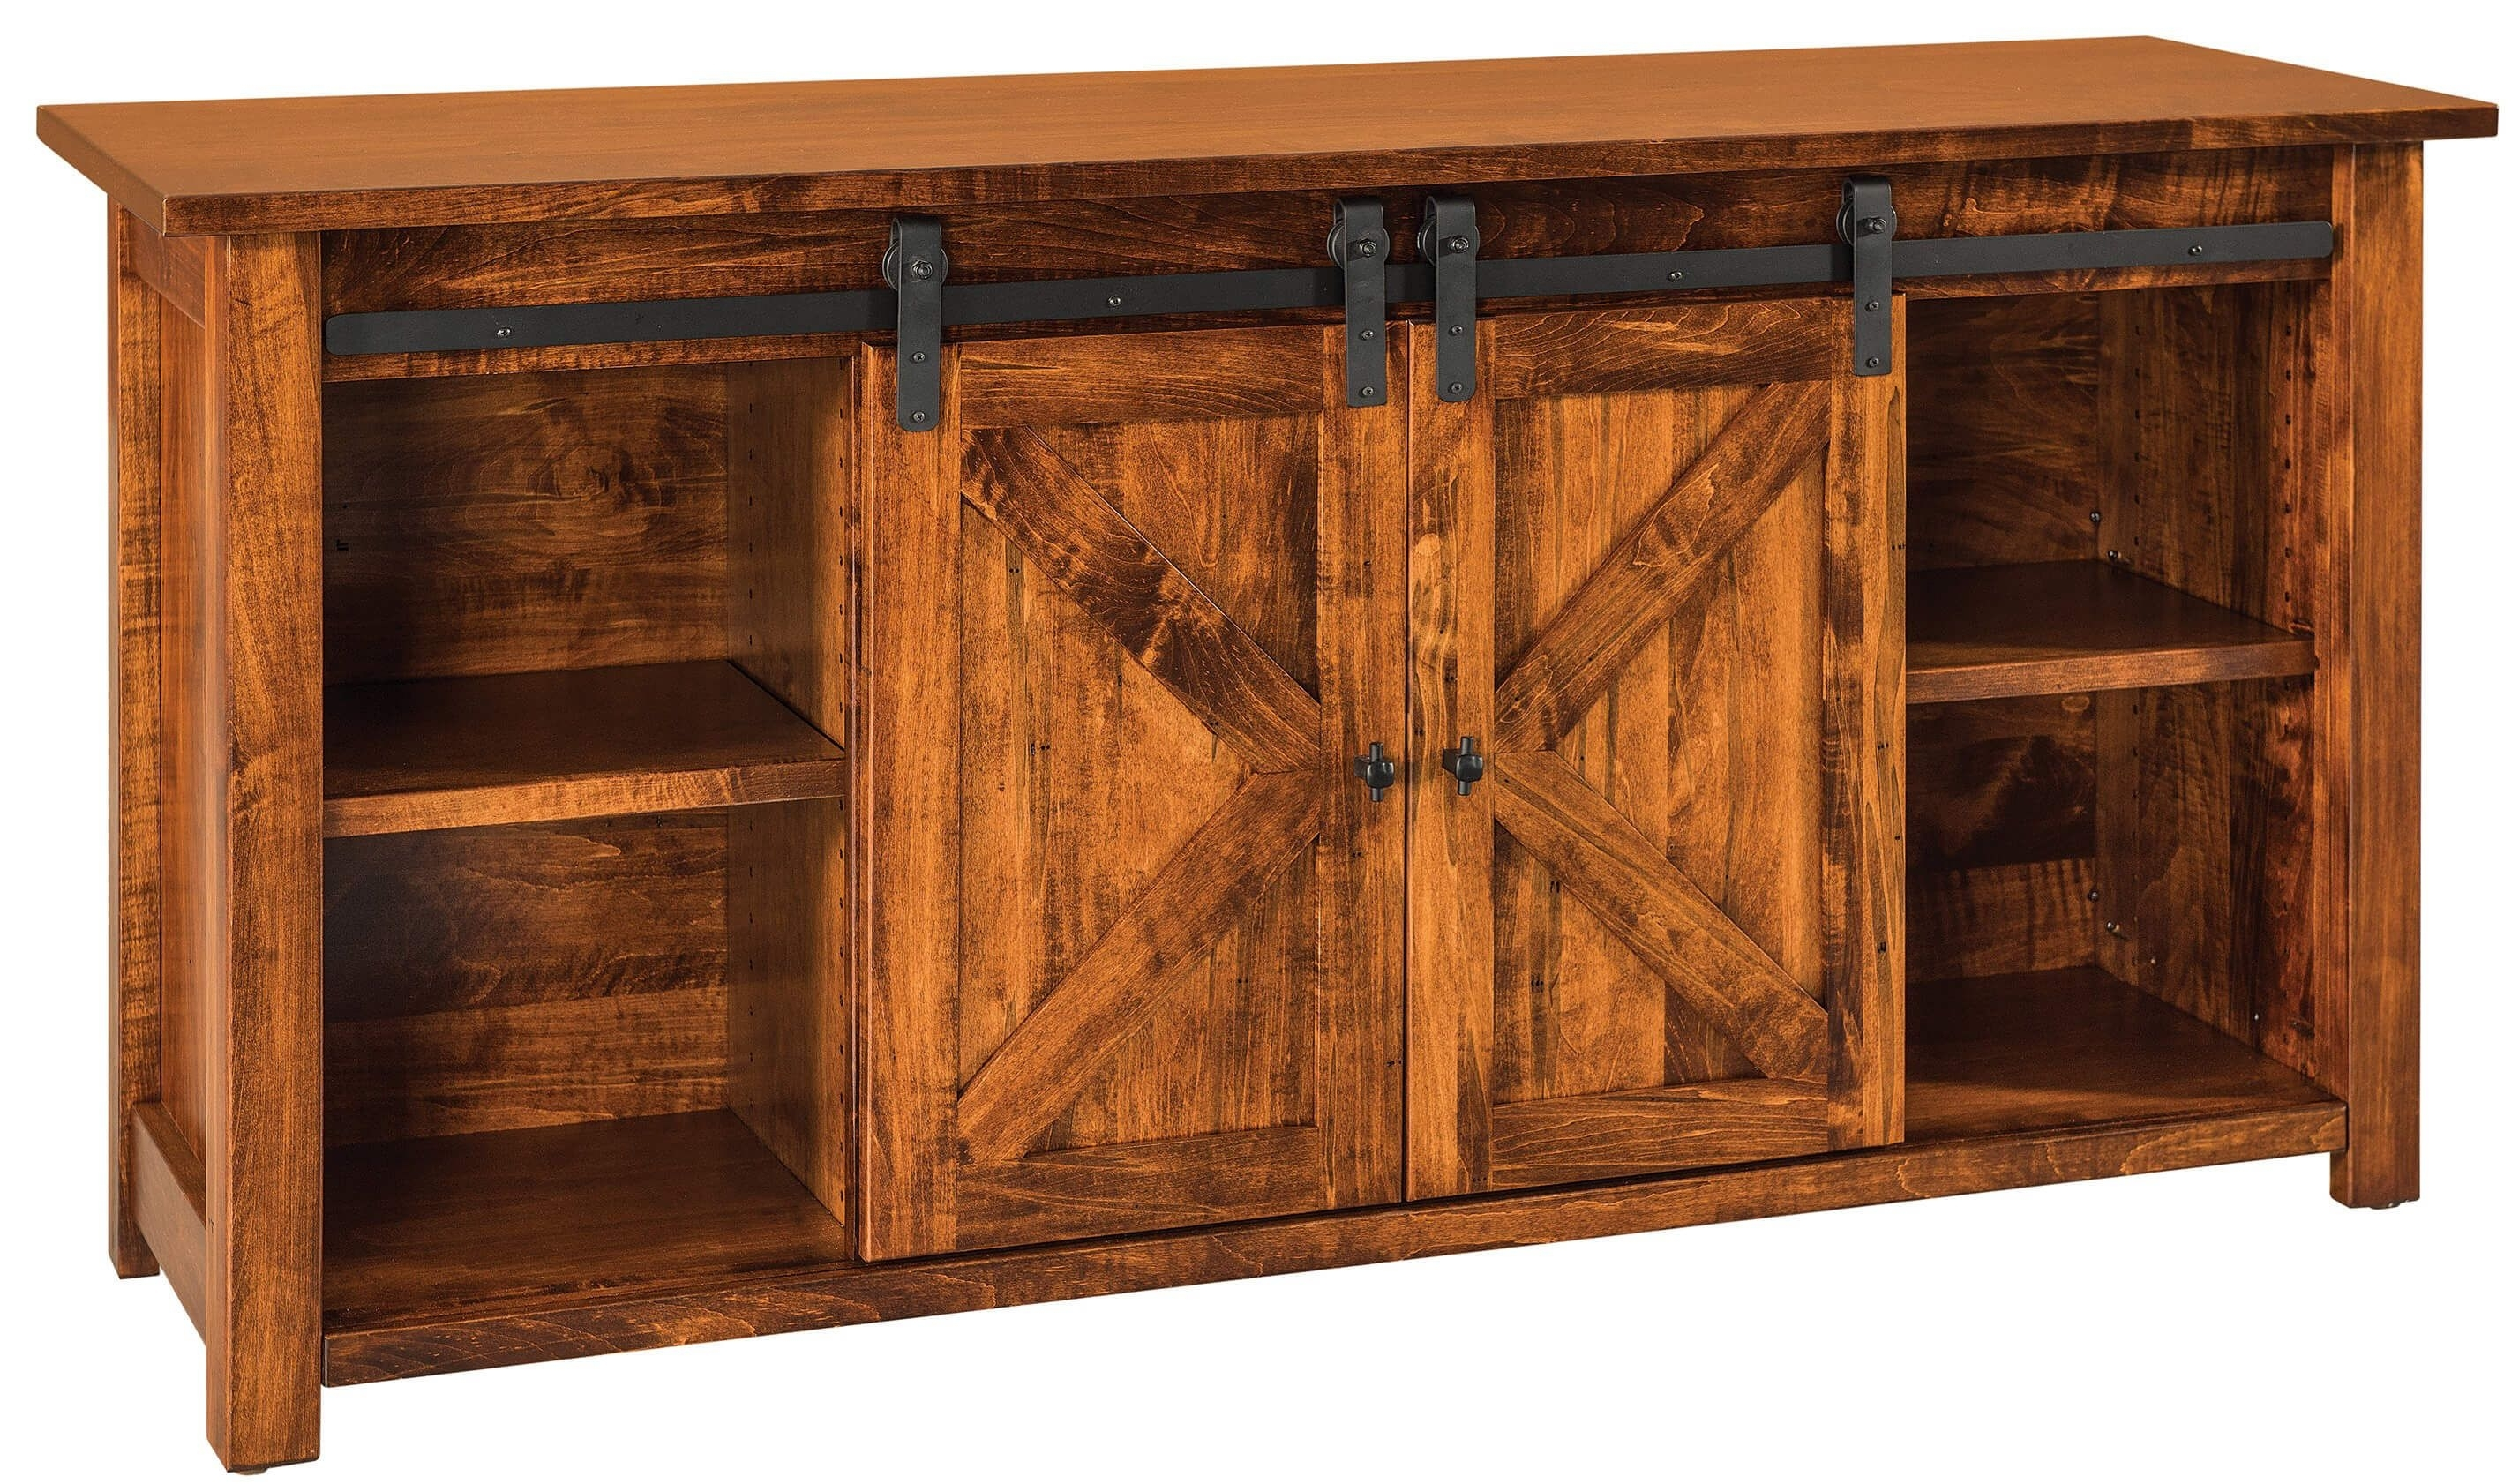 Solid Wood Buffets & Servers & Sideboards - Countryside Amish Furniture in Vintage Finish 4-Door Sideboards (Image 25 of 30)